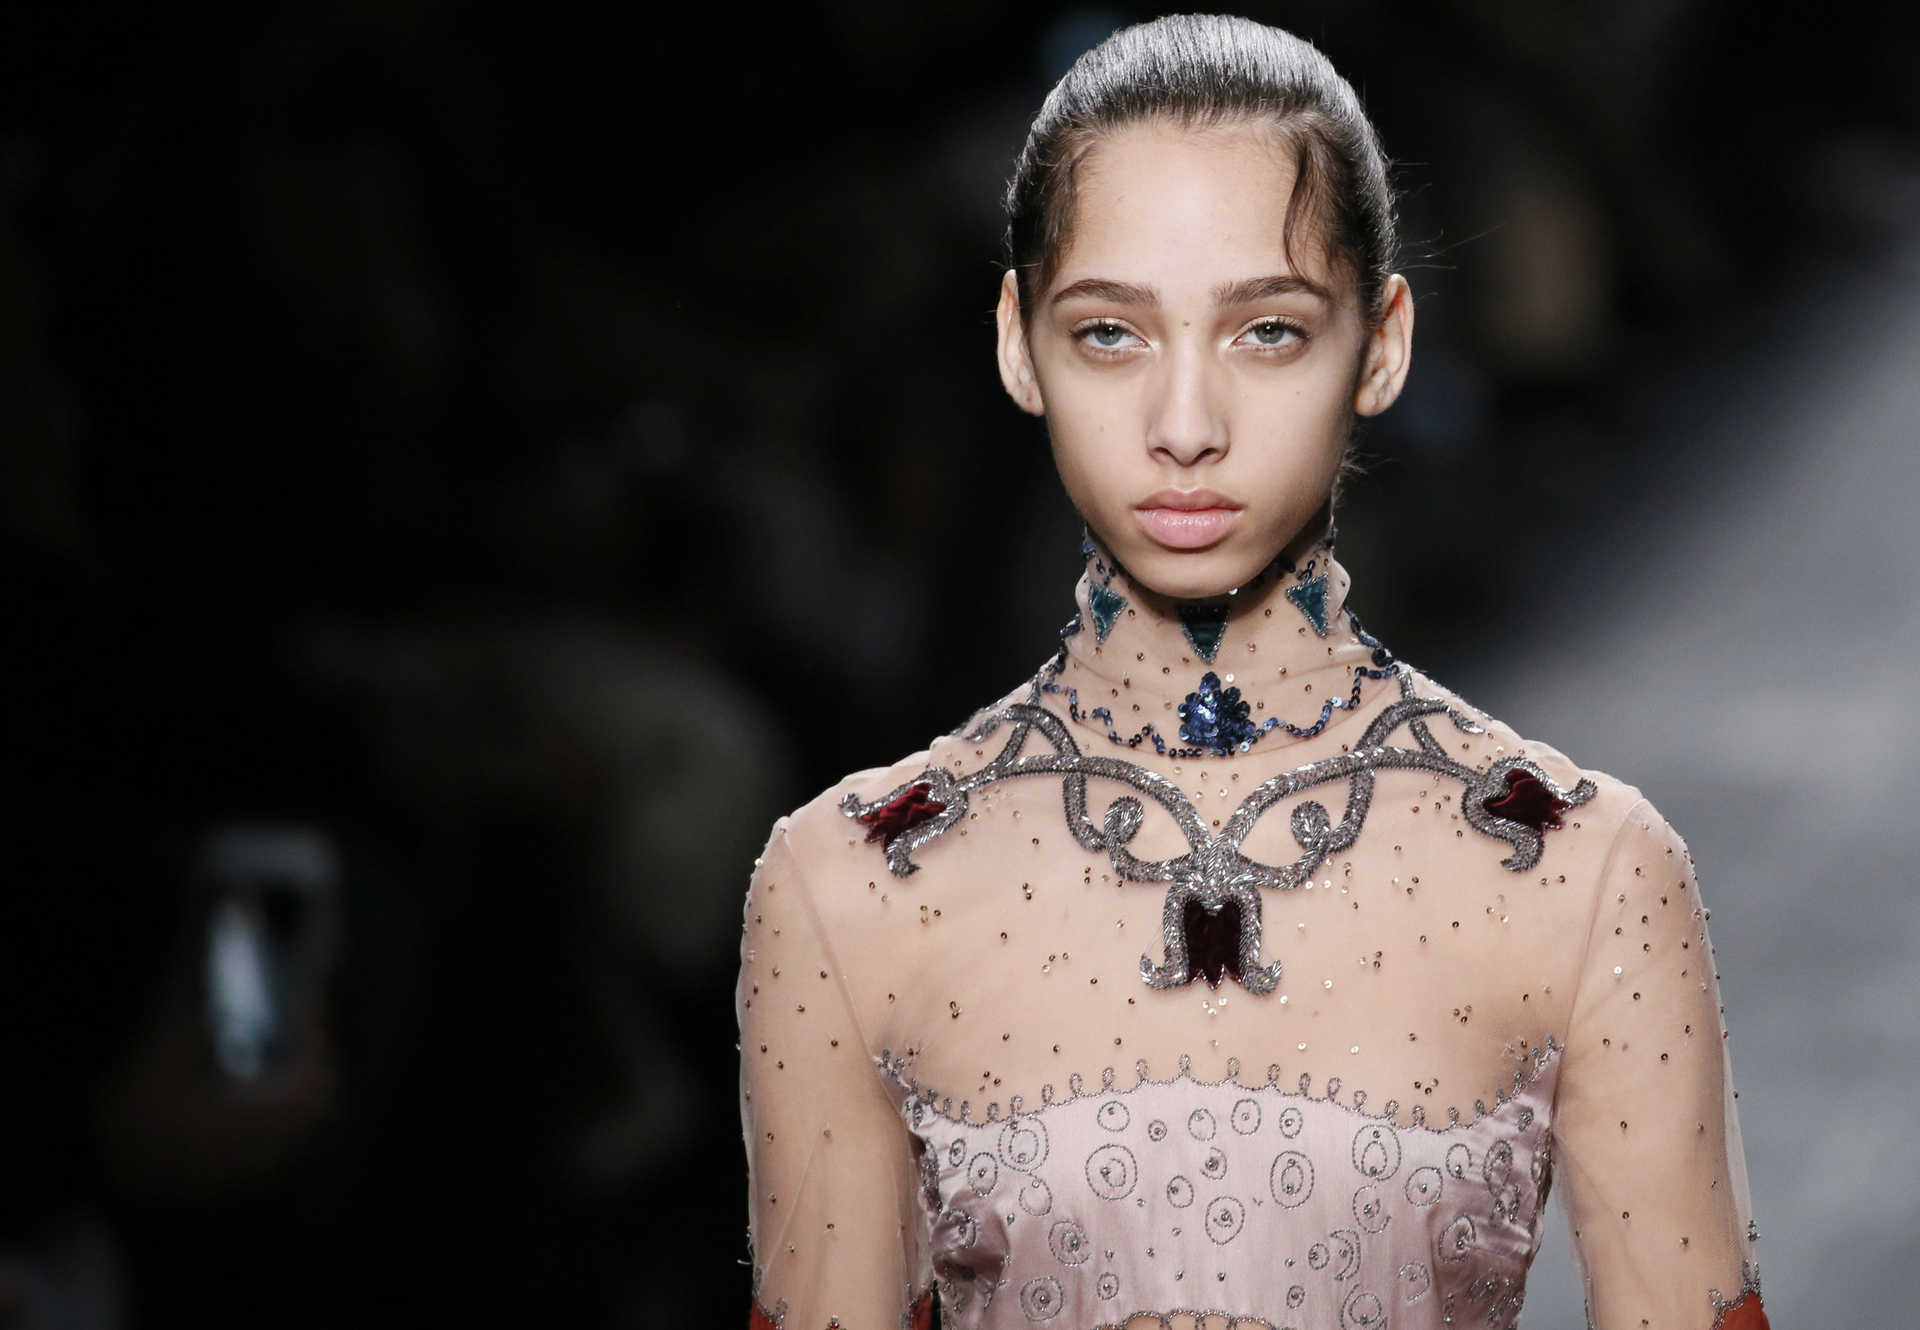 A model presents a creation by Italian designers Maria Grazia Chiuri and Pier Paolo Piccioli as part of their Fall/Winter 2016/2017 women's ready-to-wear collection for fashion house Valentino in Paris